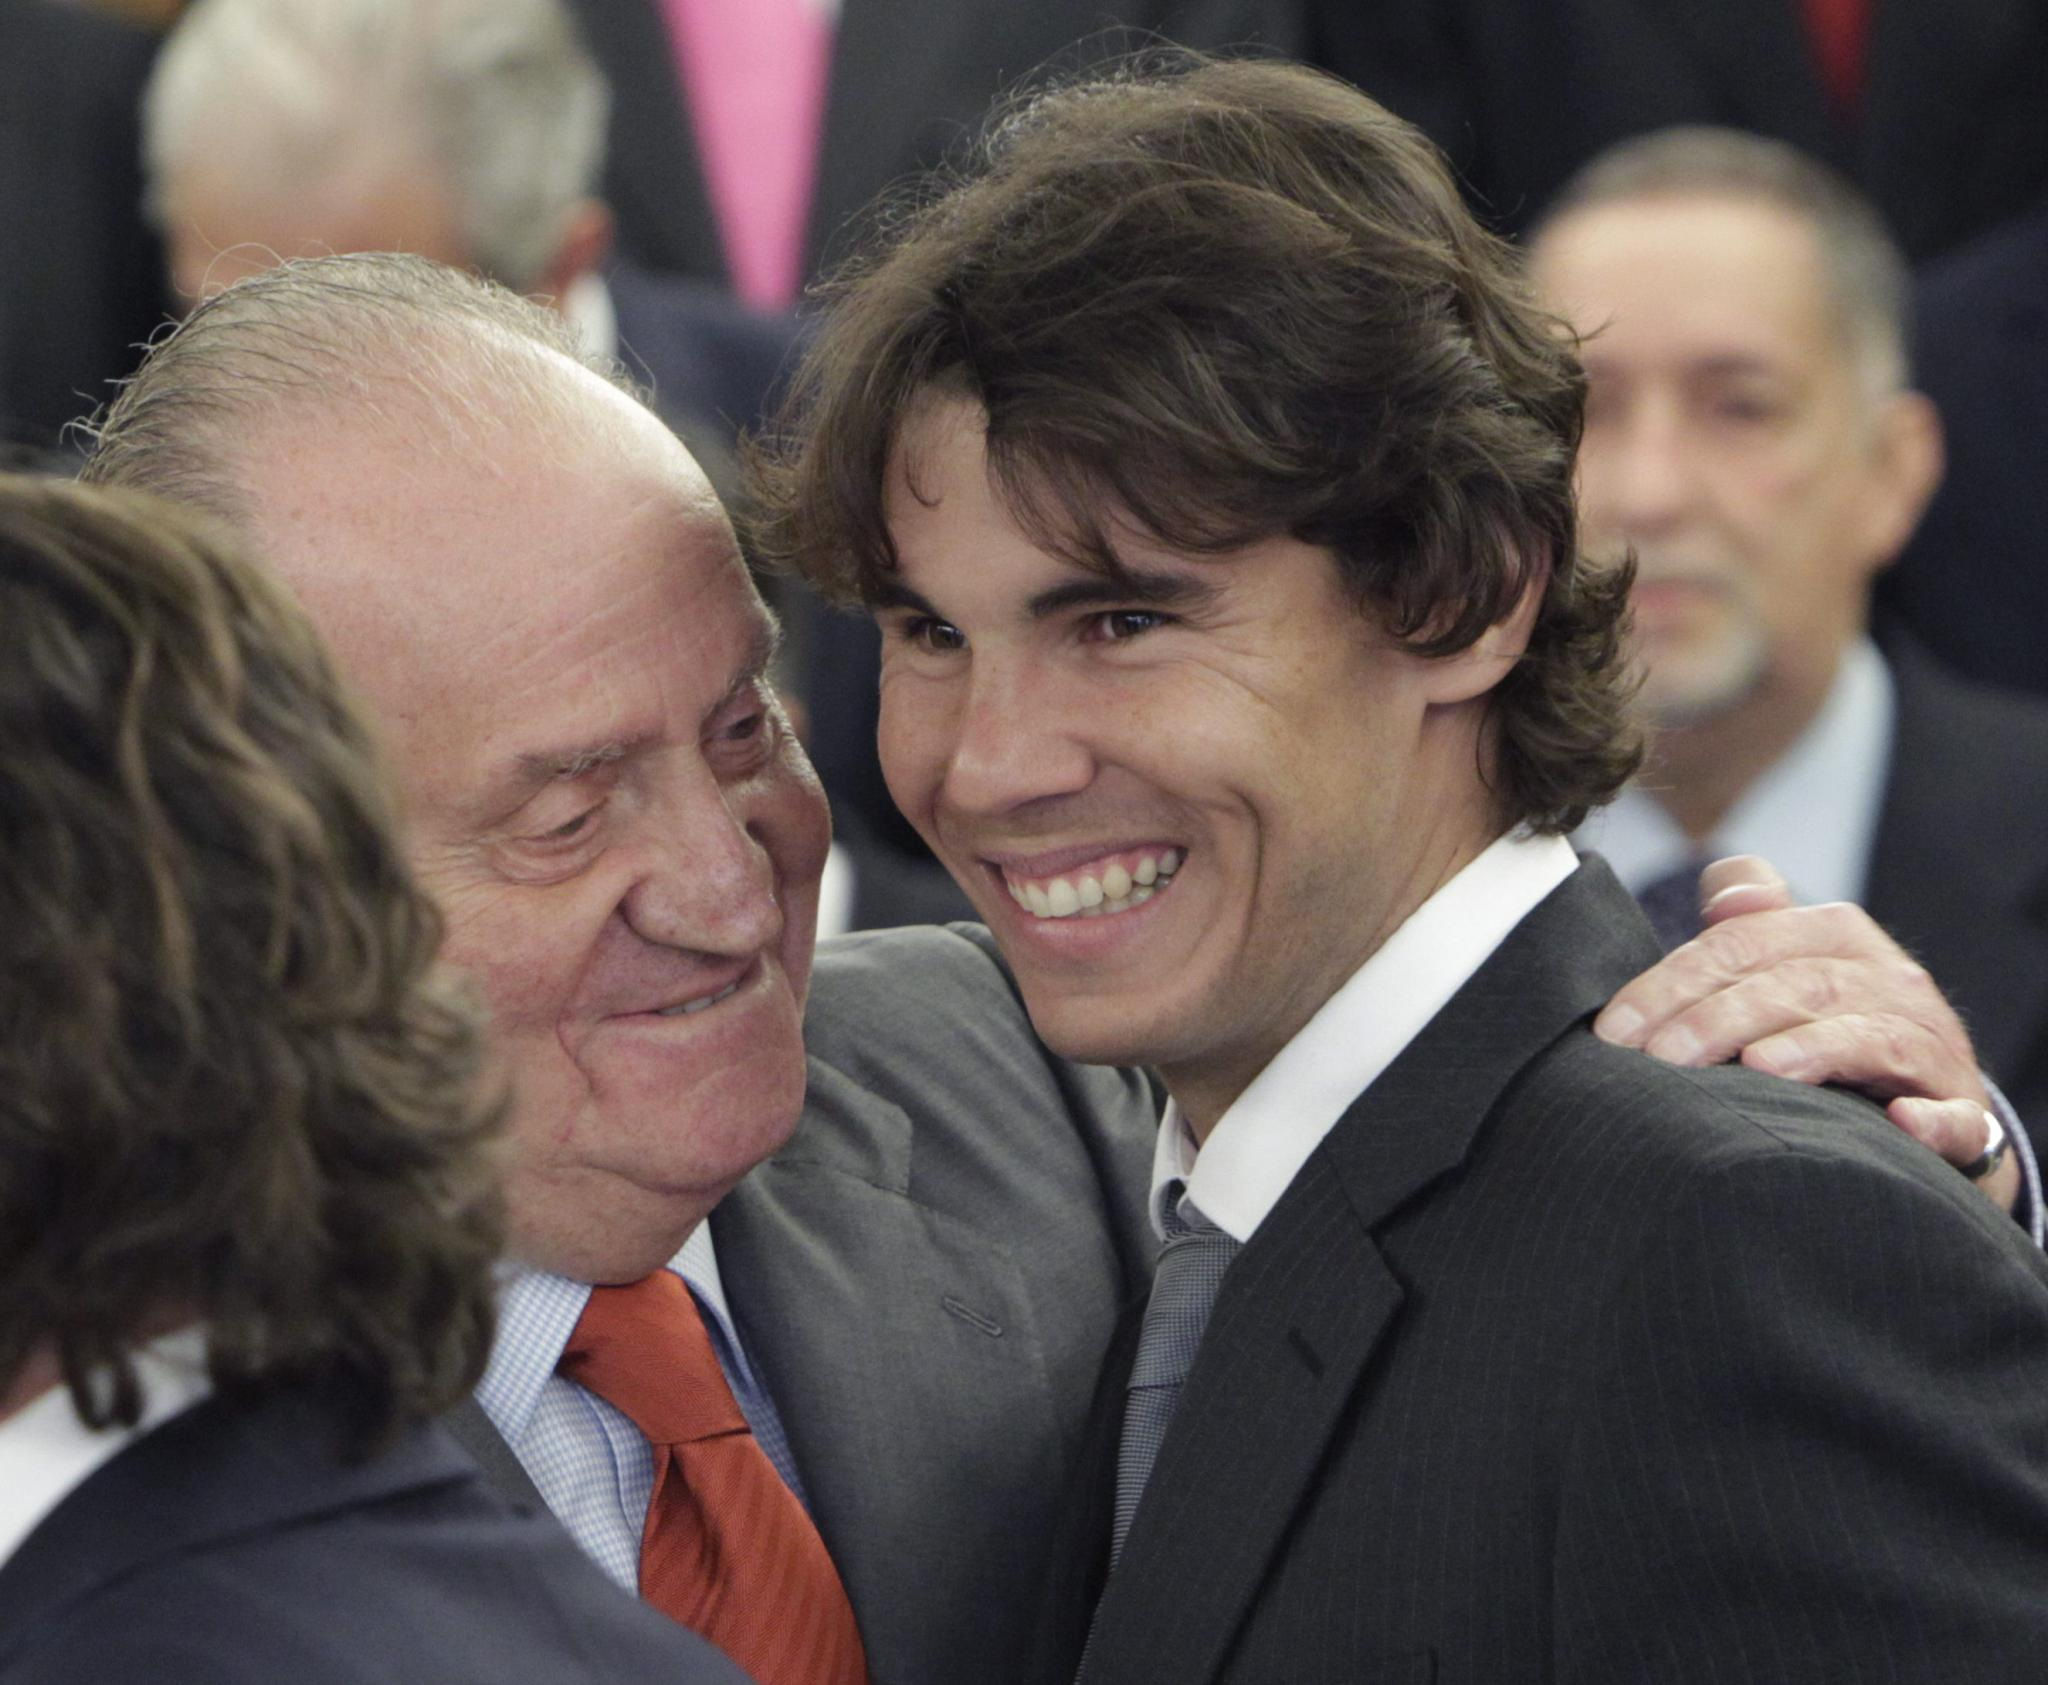 Nadal, longtime girlfriend tie knot